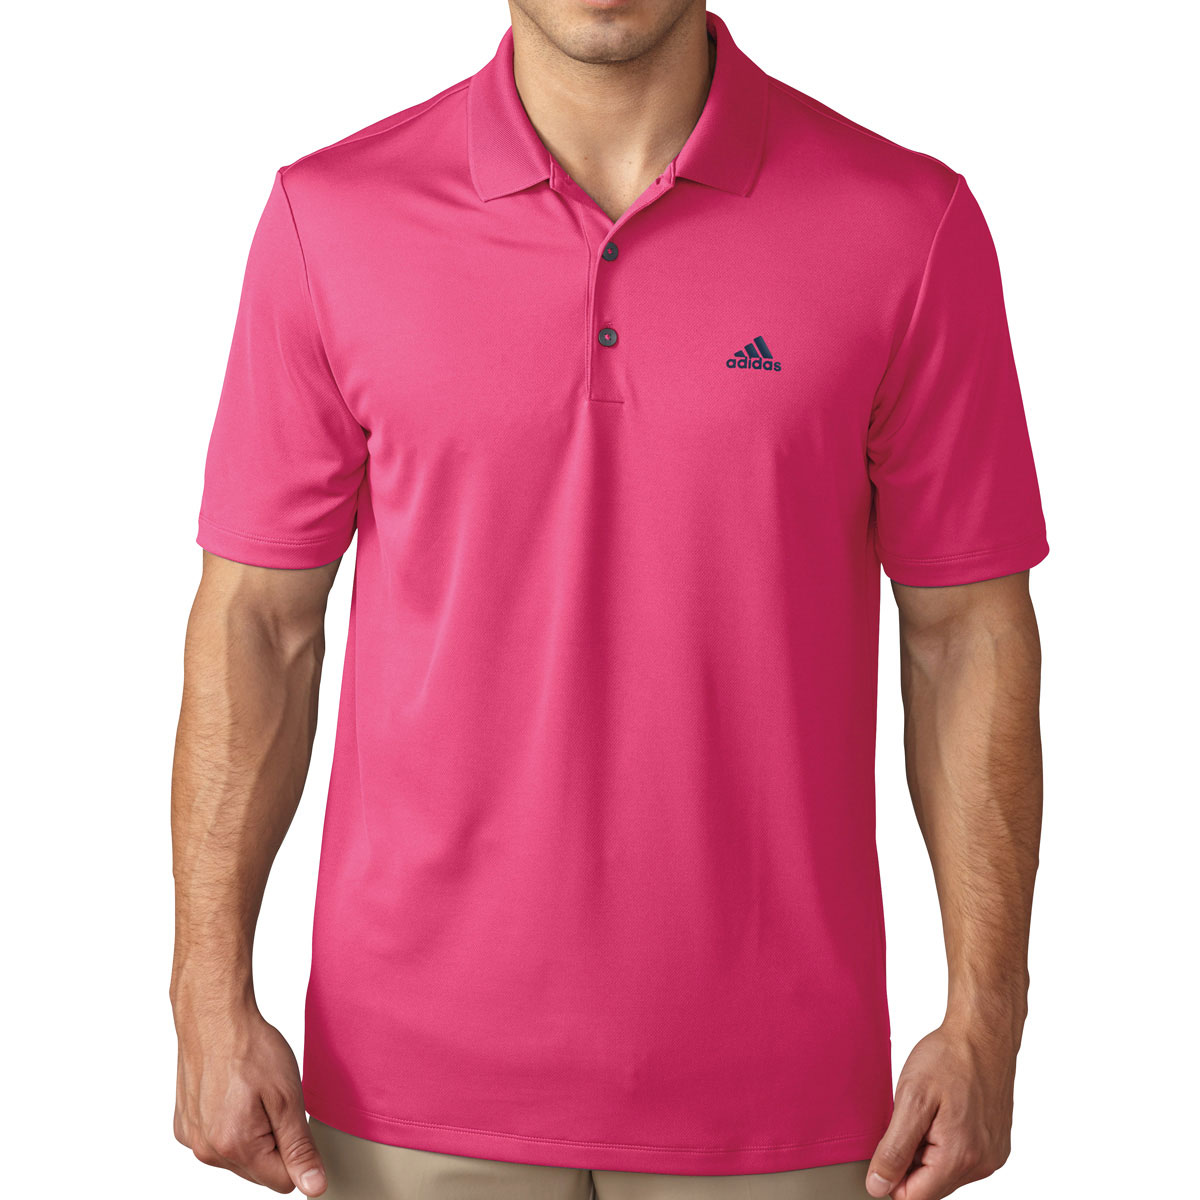 Adidas golf 2017 mens performance lc logo polo shirt for Mens golf polo shirts